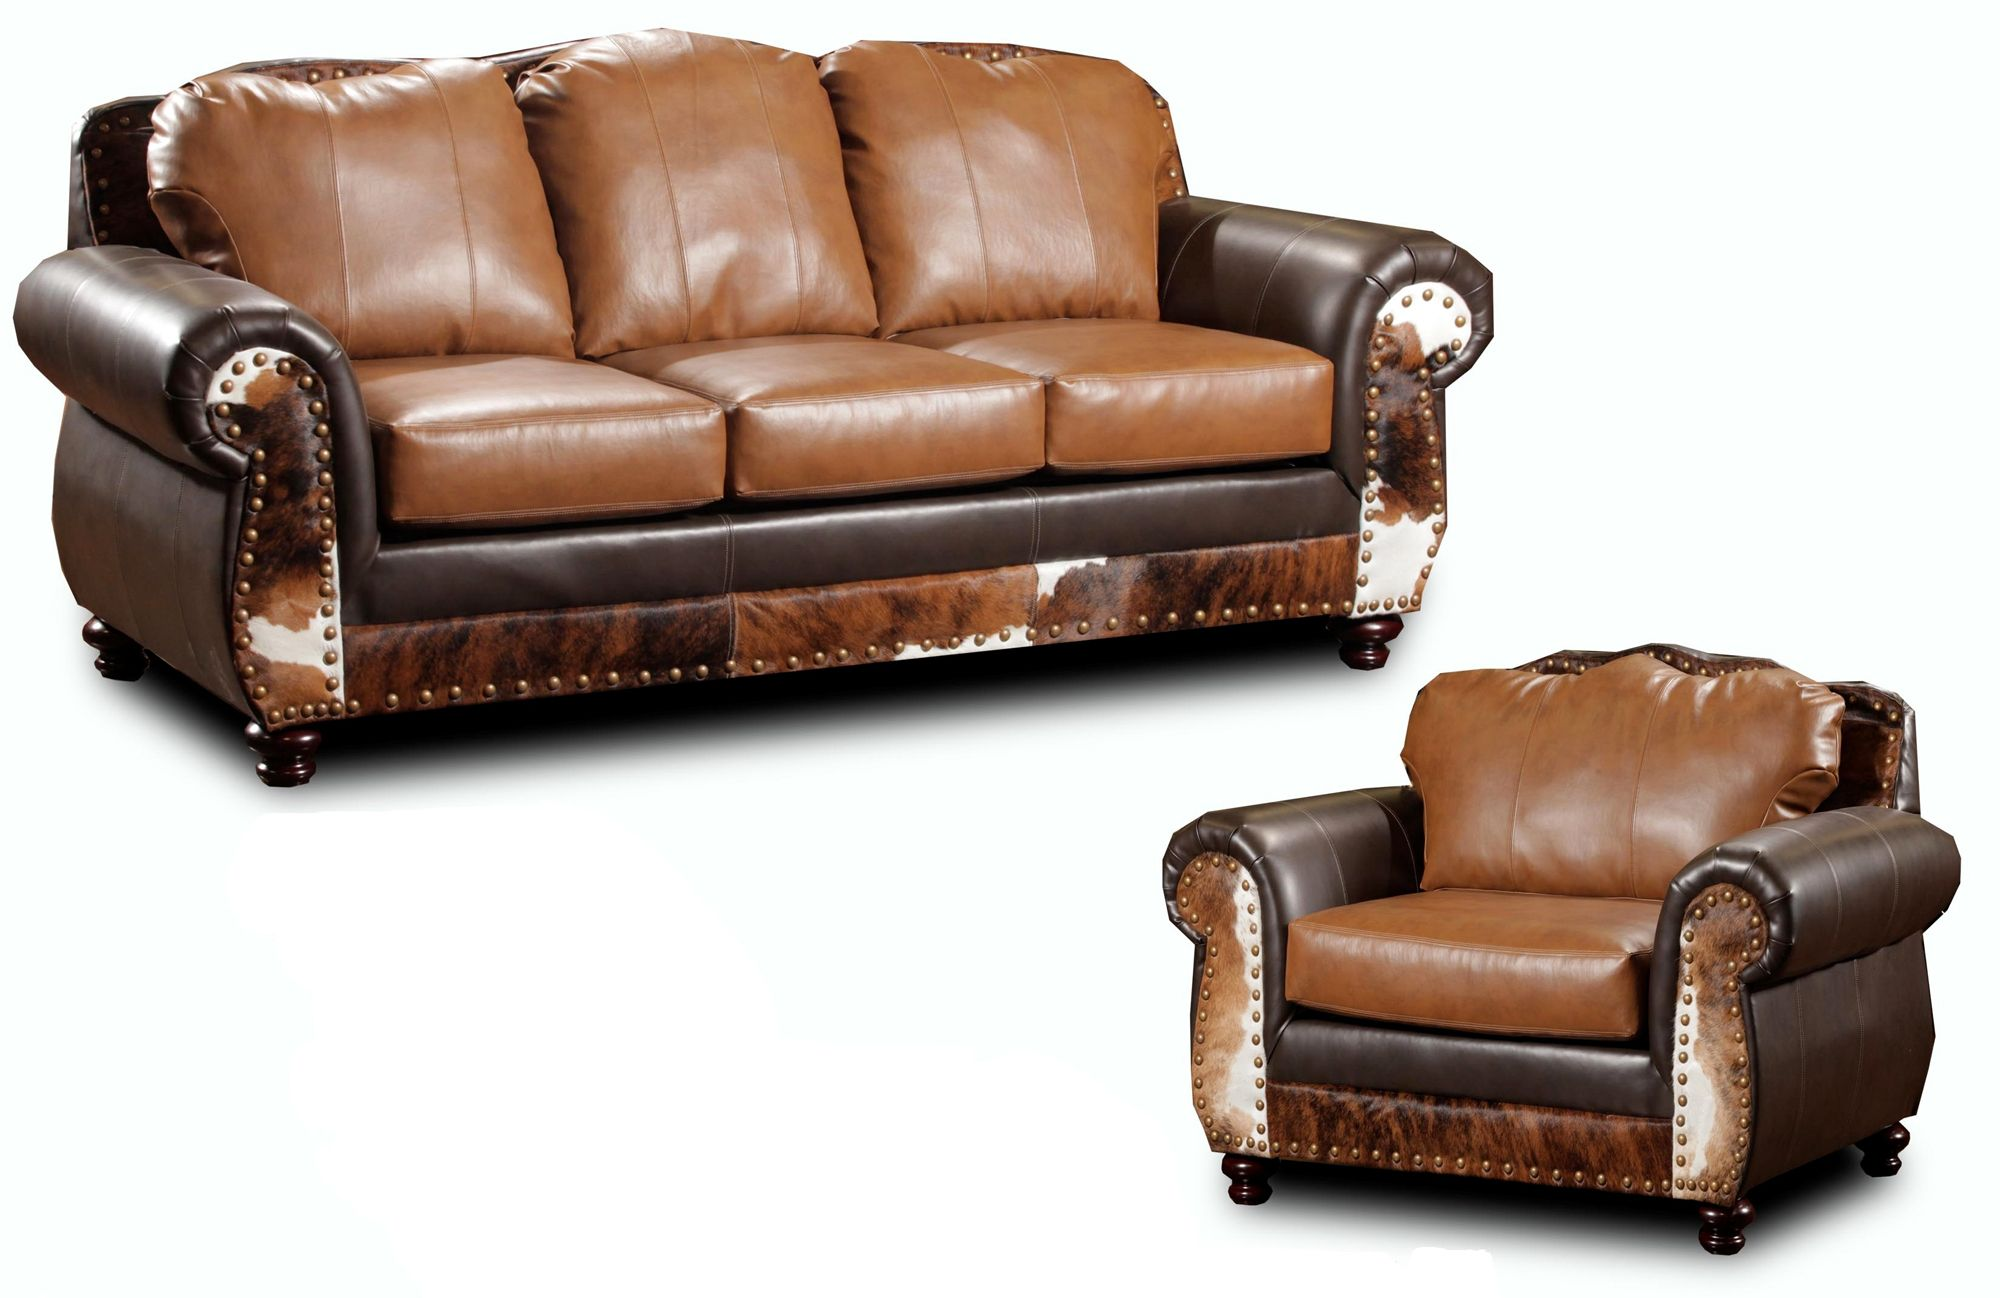 Rustic Leather Furniture